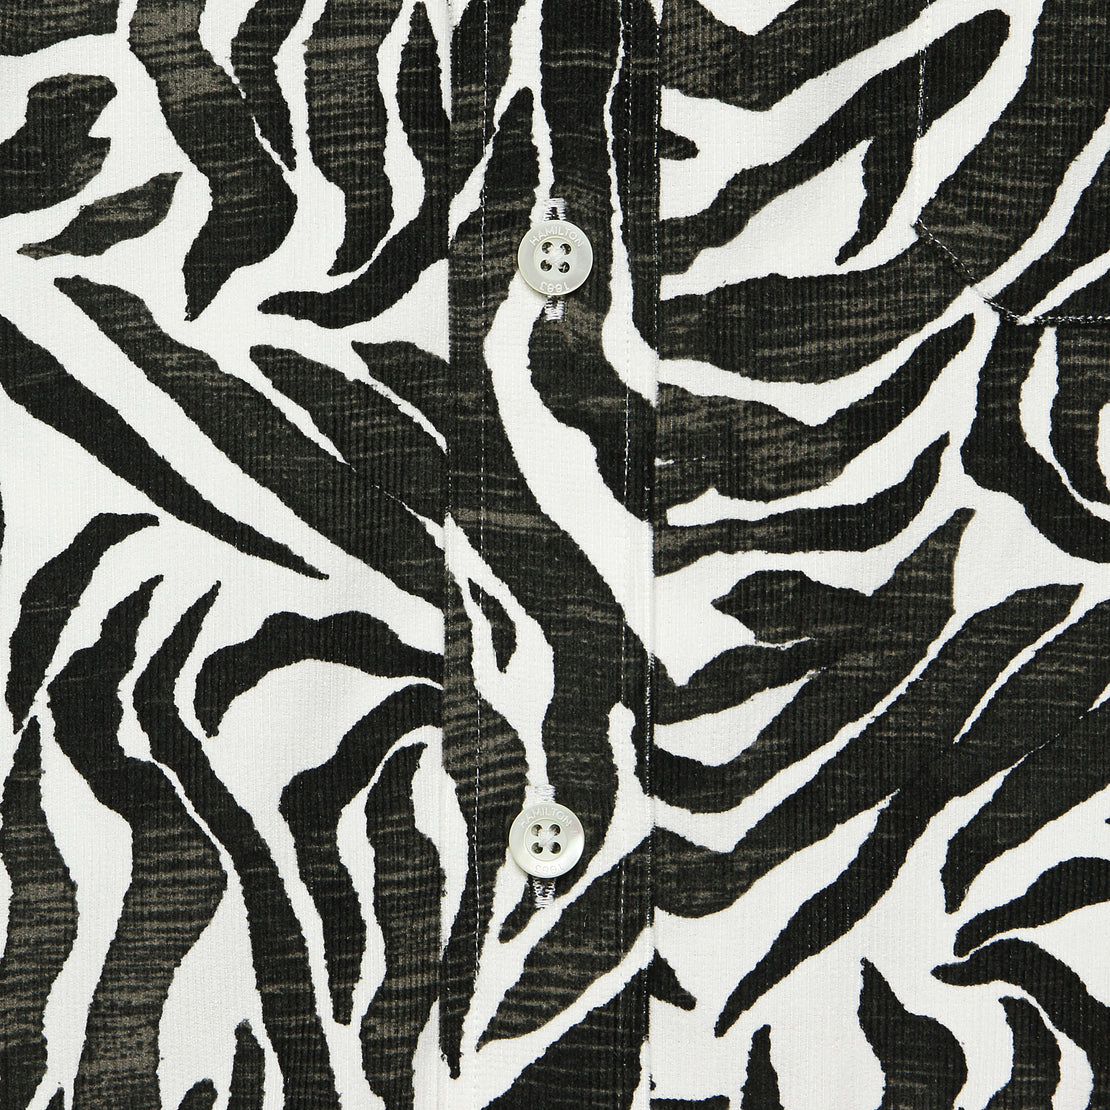 Zebra Corduroy Shirt - Black/White